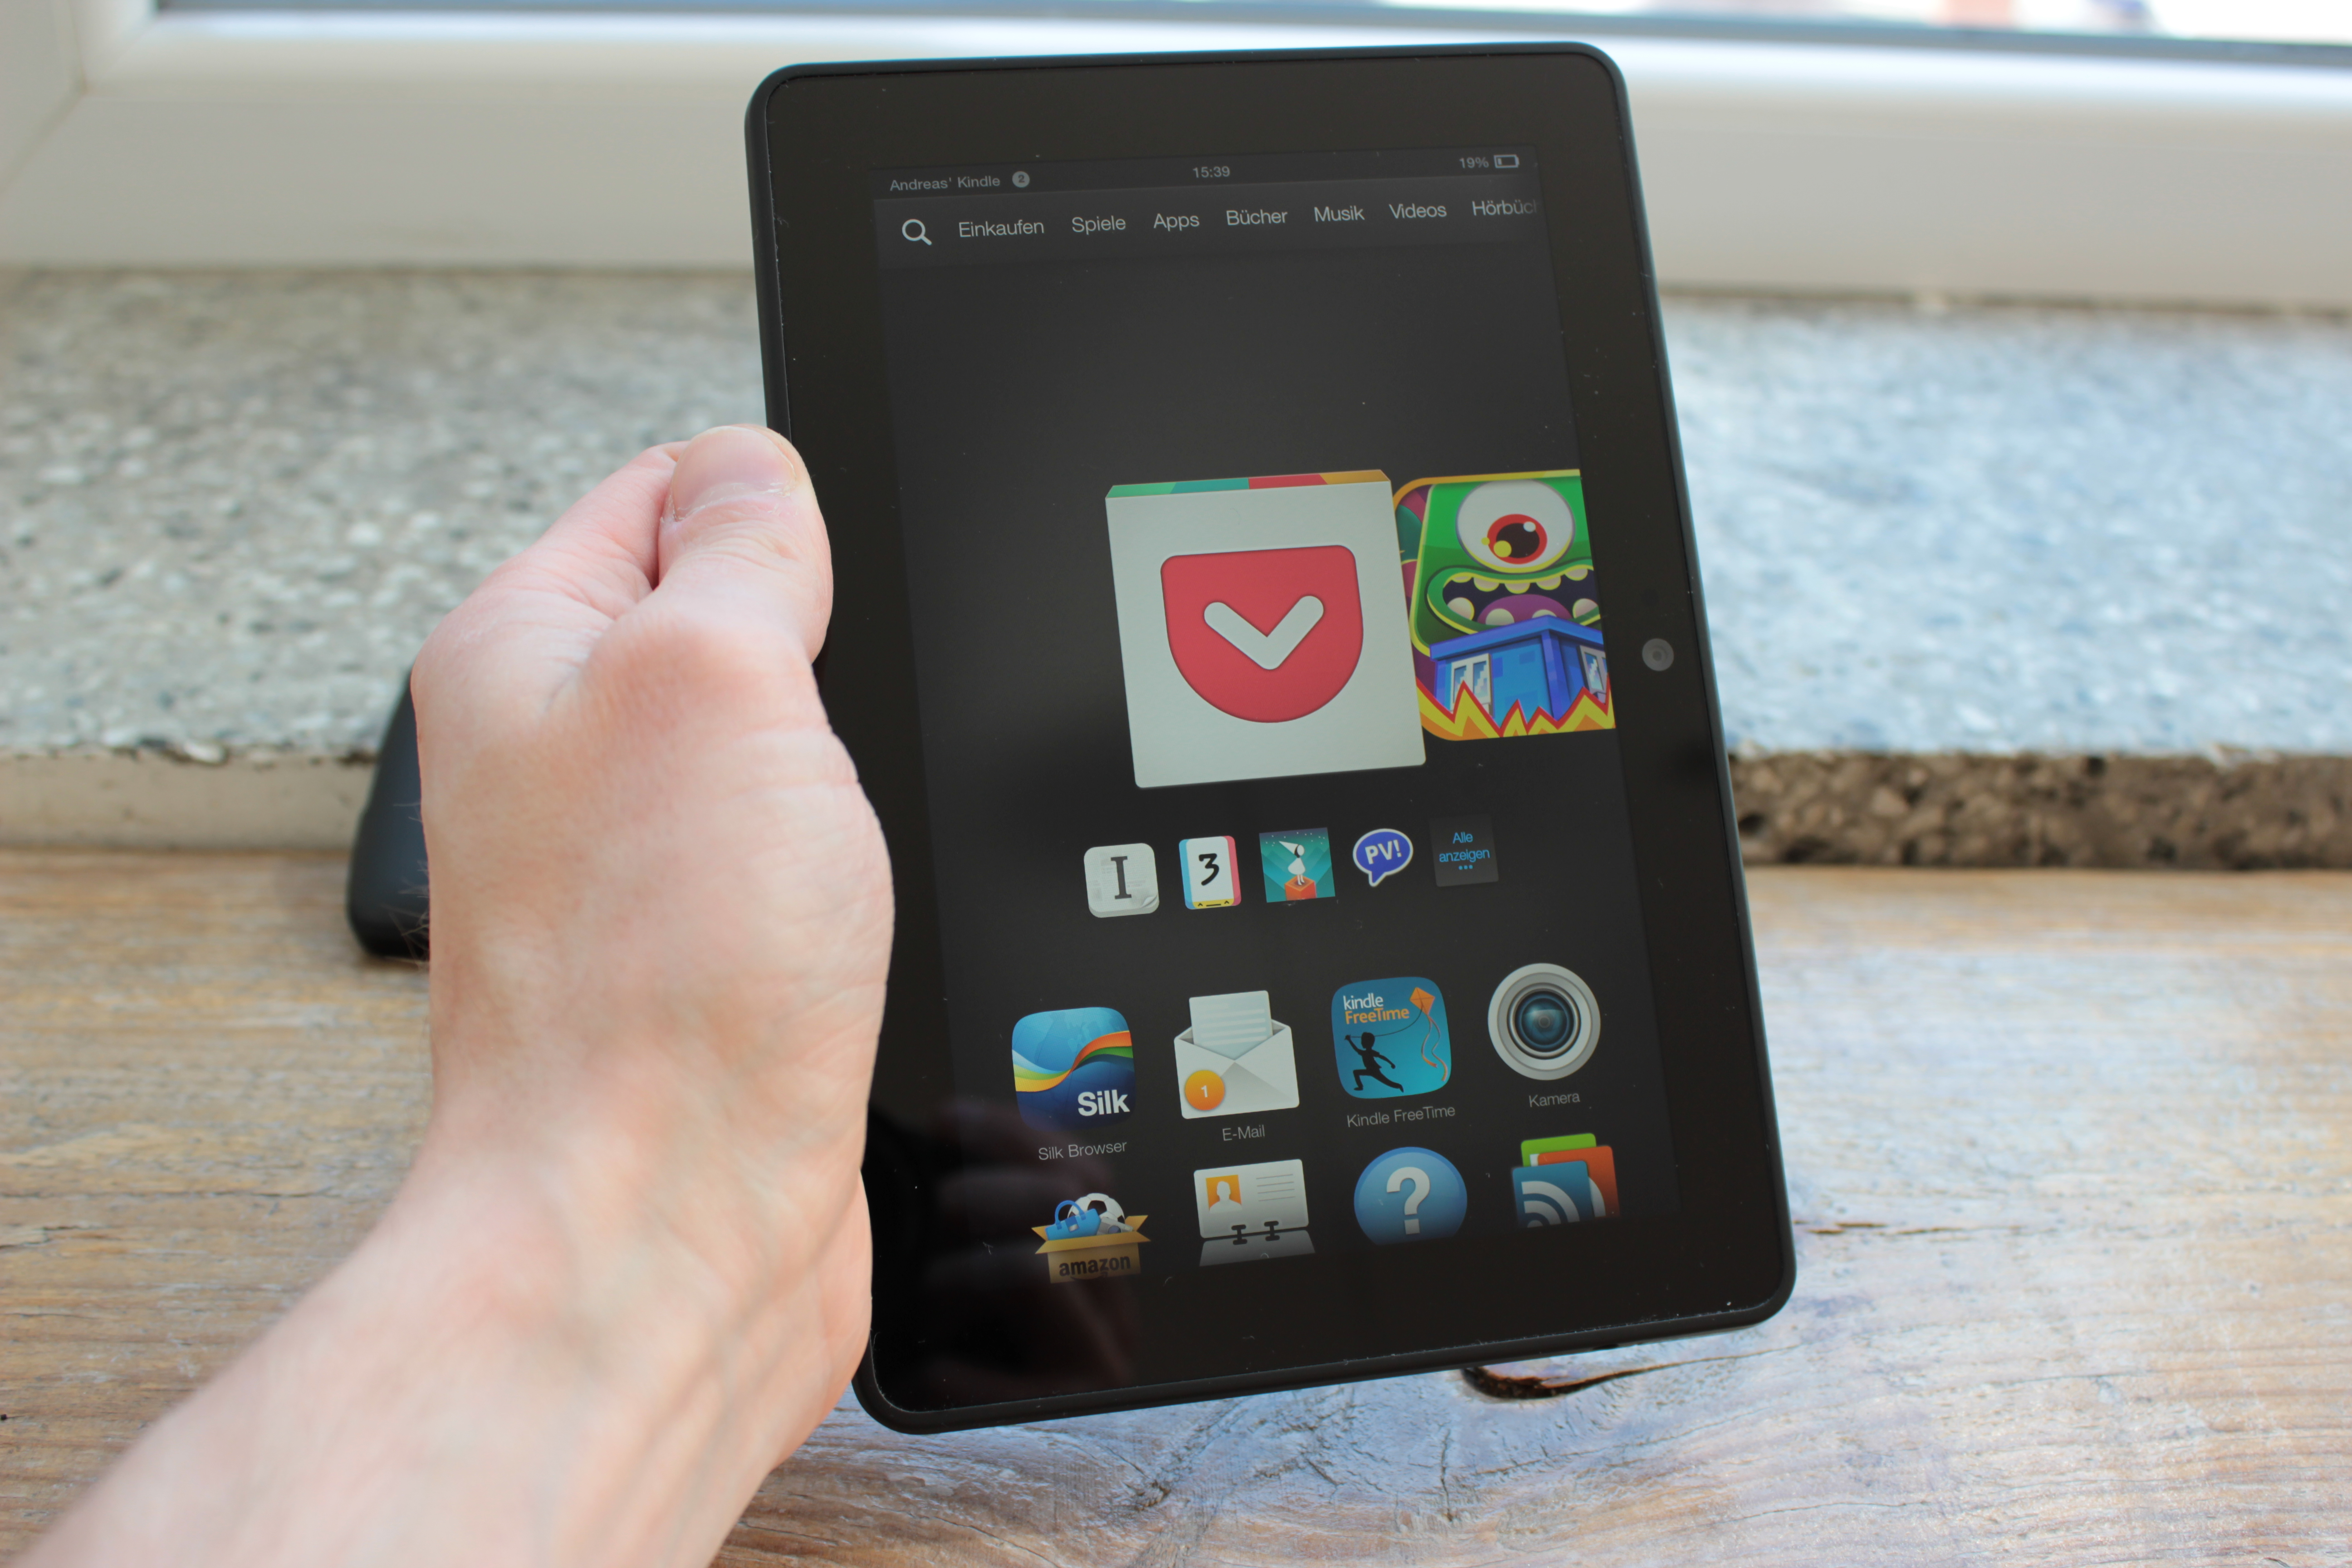 Der Tablet Kindle Fire Hdx 7 Im Test Das Amazon Tablet Unter Der Lupe